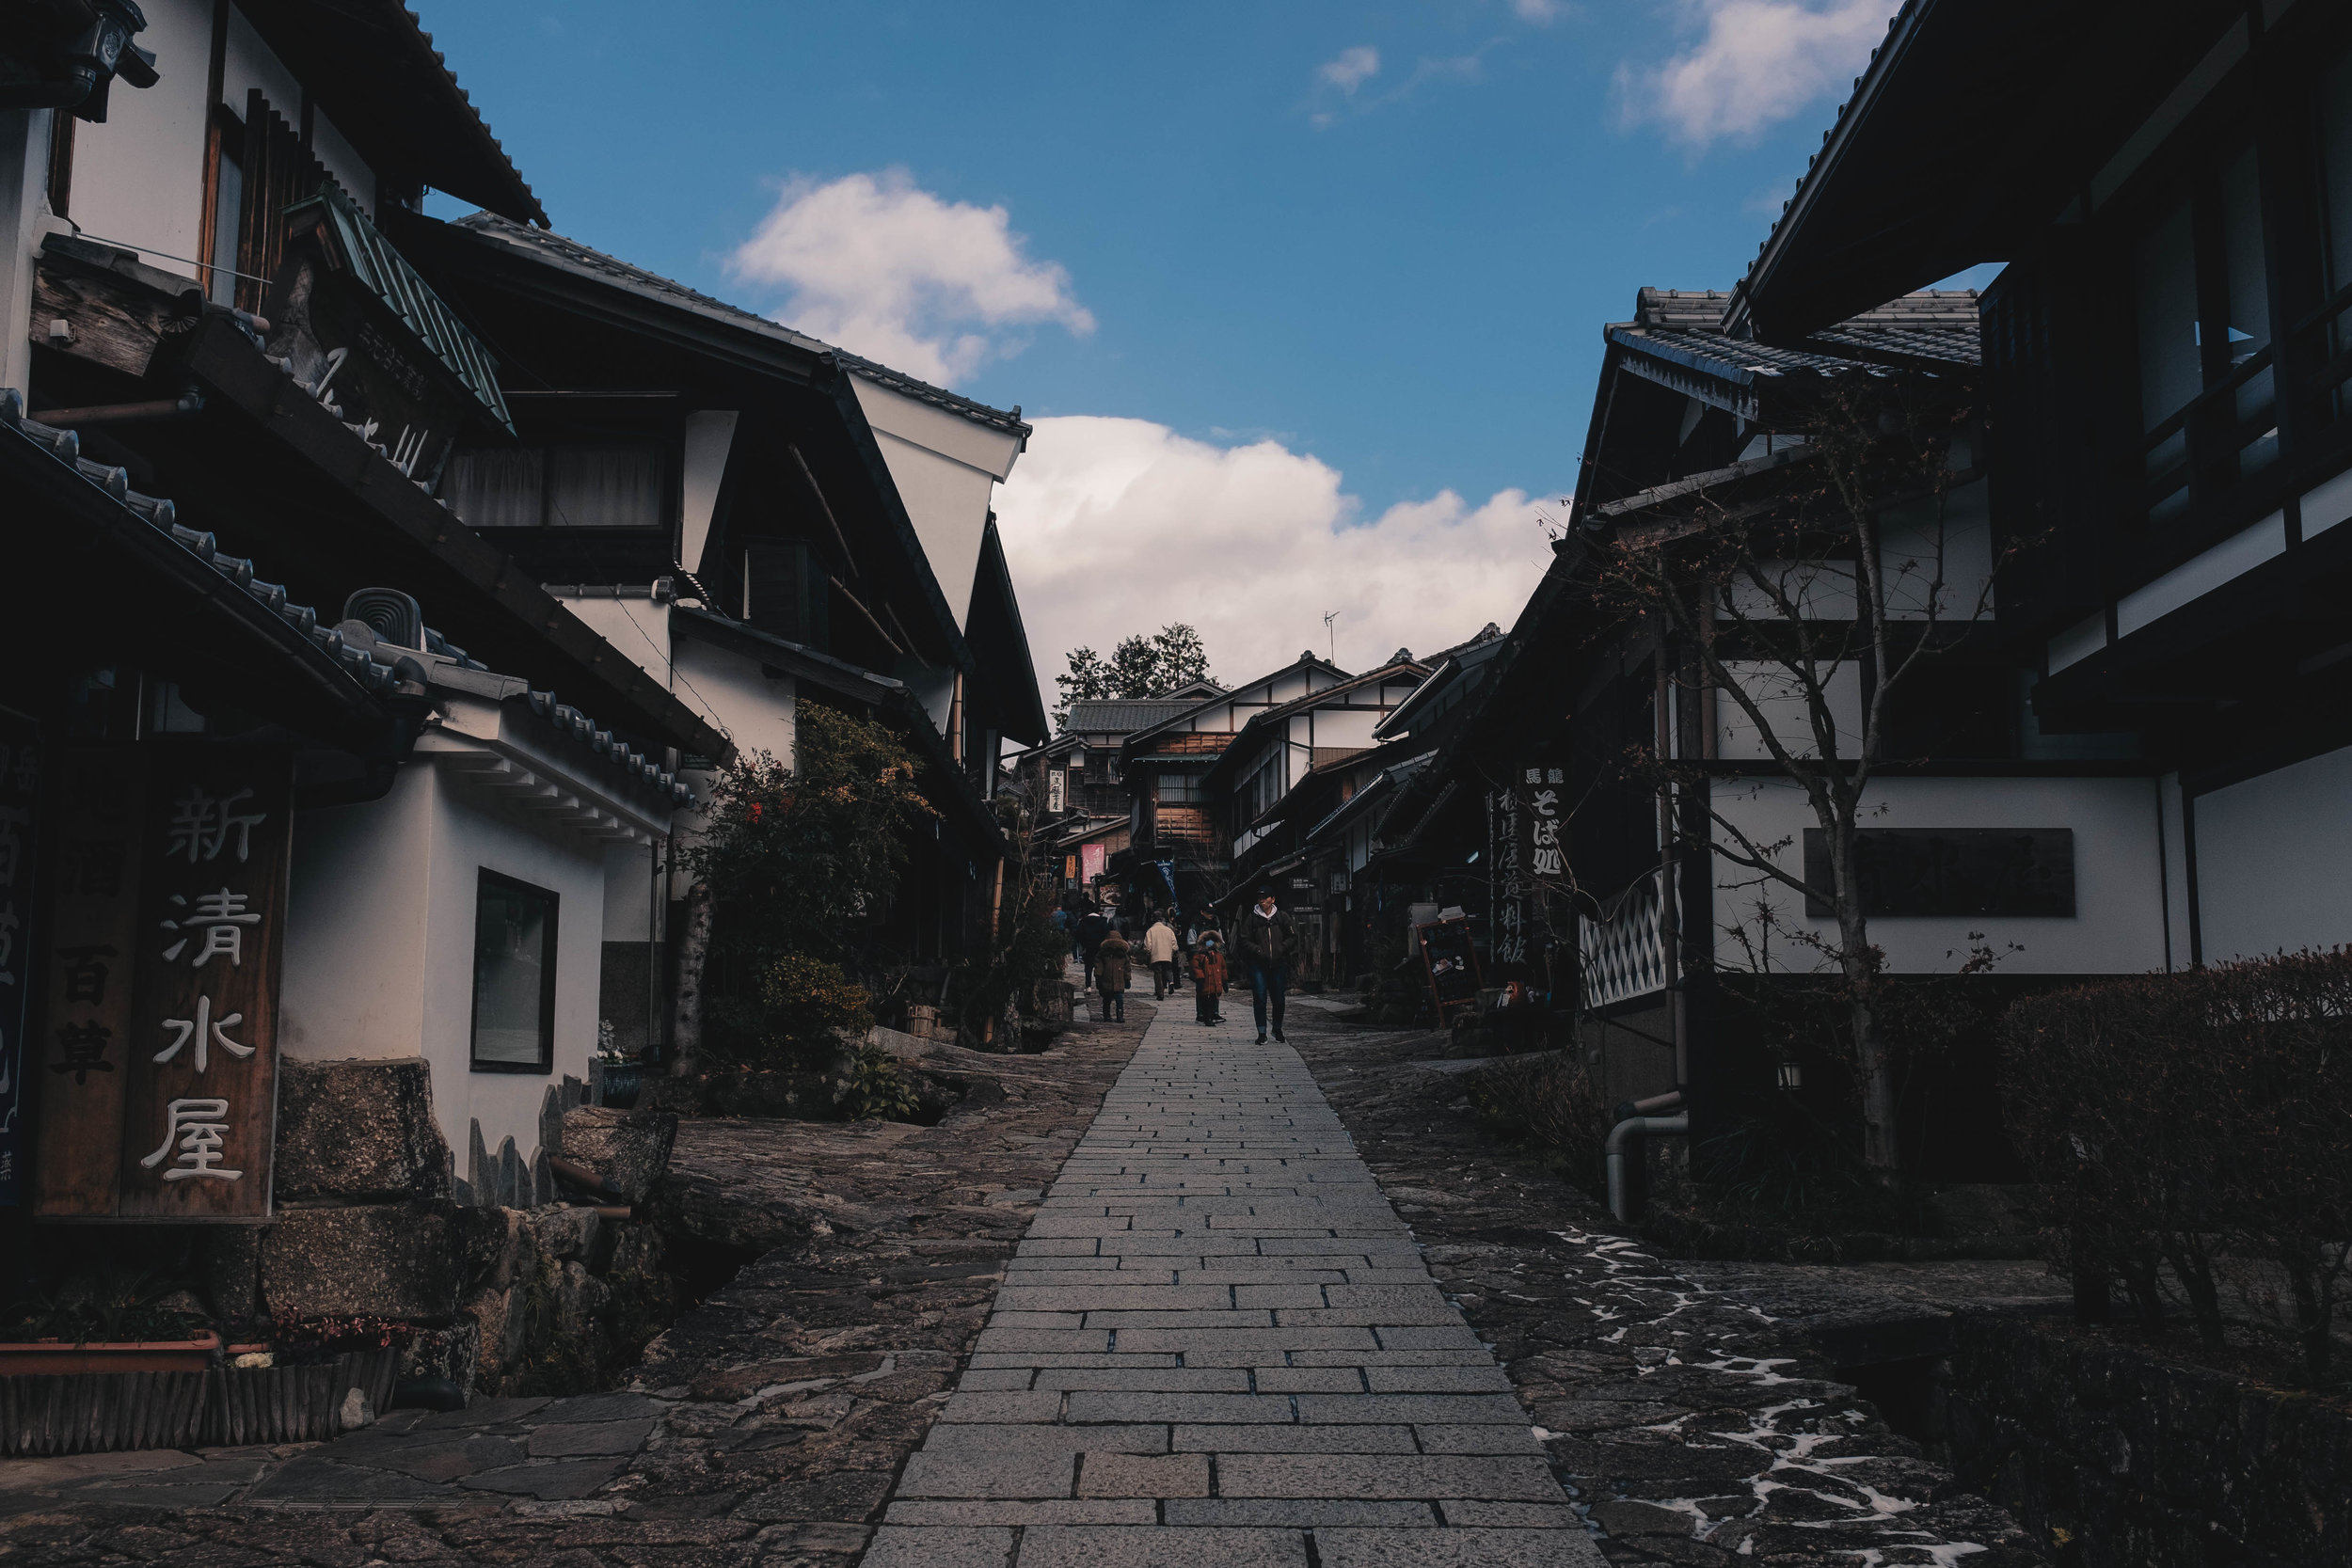 Magome is pretty hill and is located at one of the highest points of the Kiso Valley area in Japan